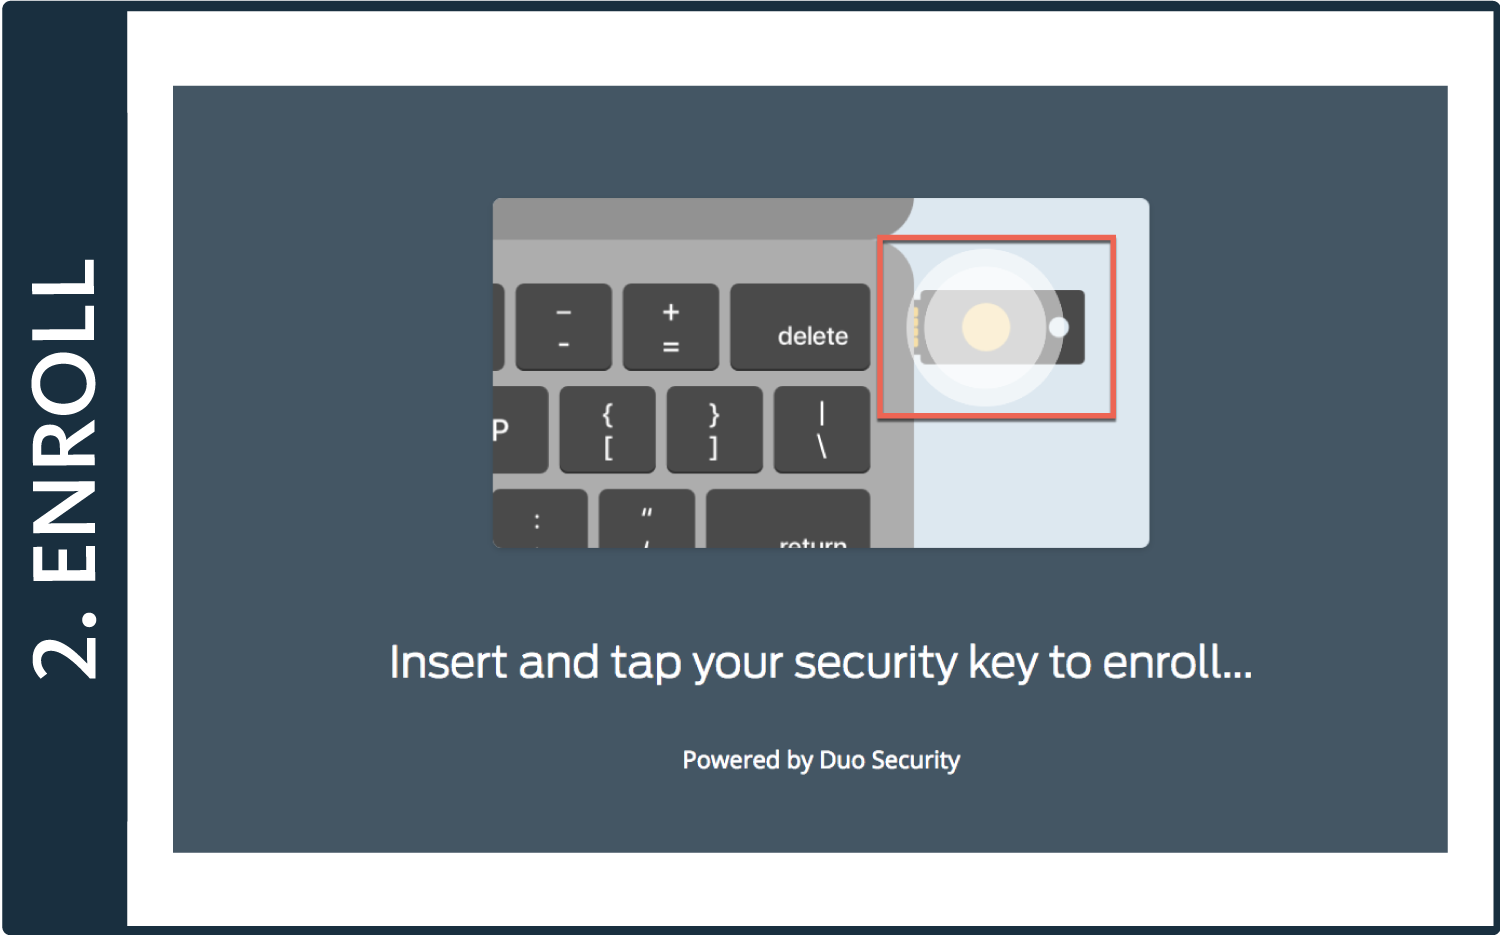 Insert your U2F key into your computer. When it begins to flash, click the button to enroll the device in Duo.